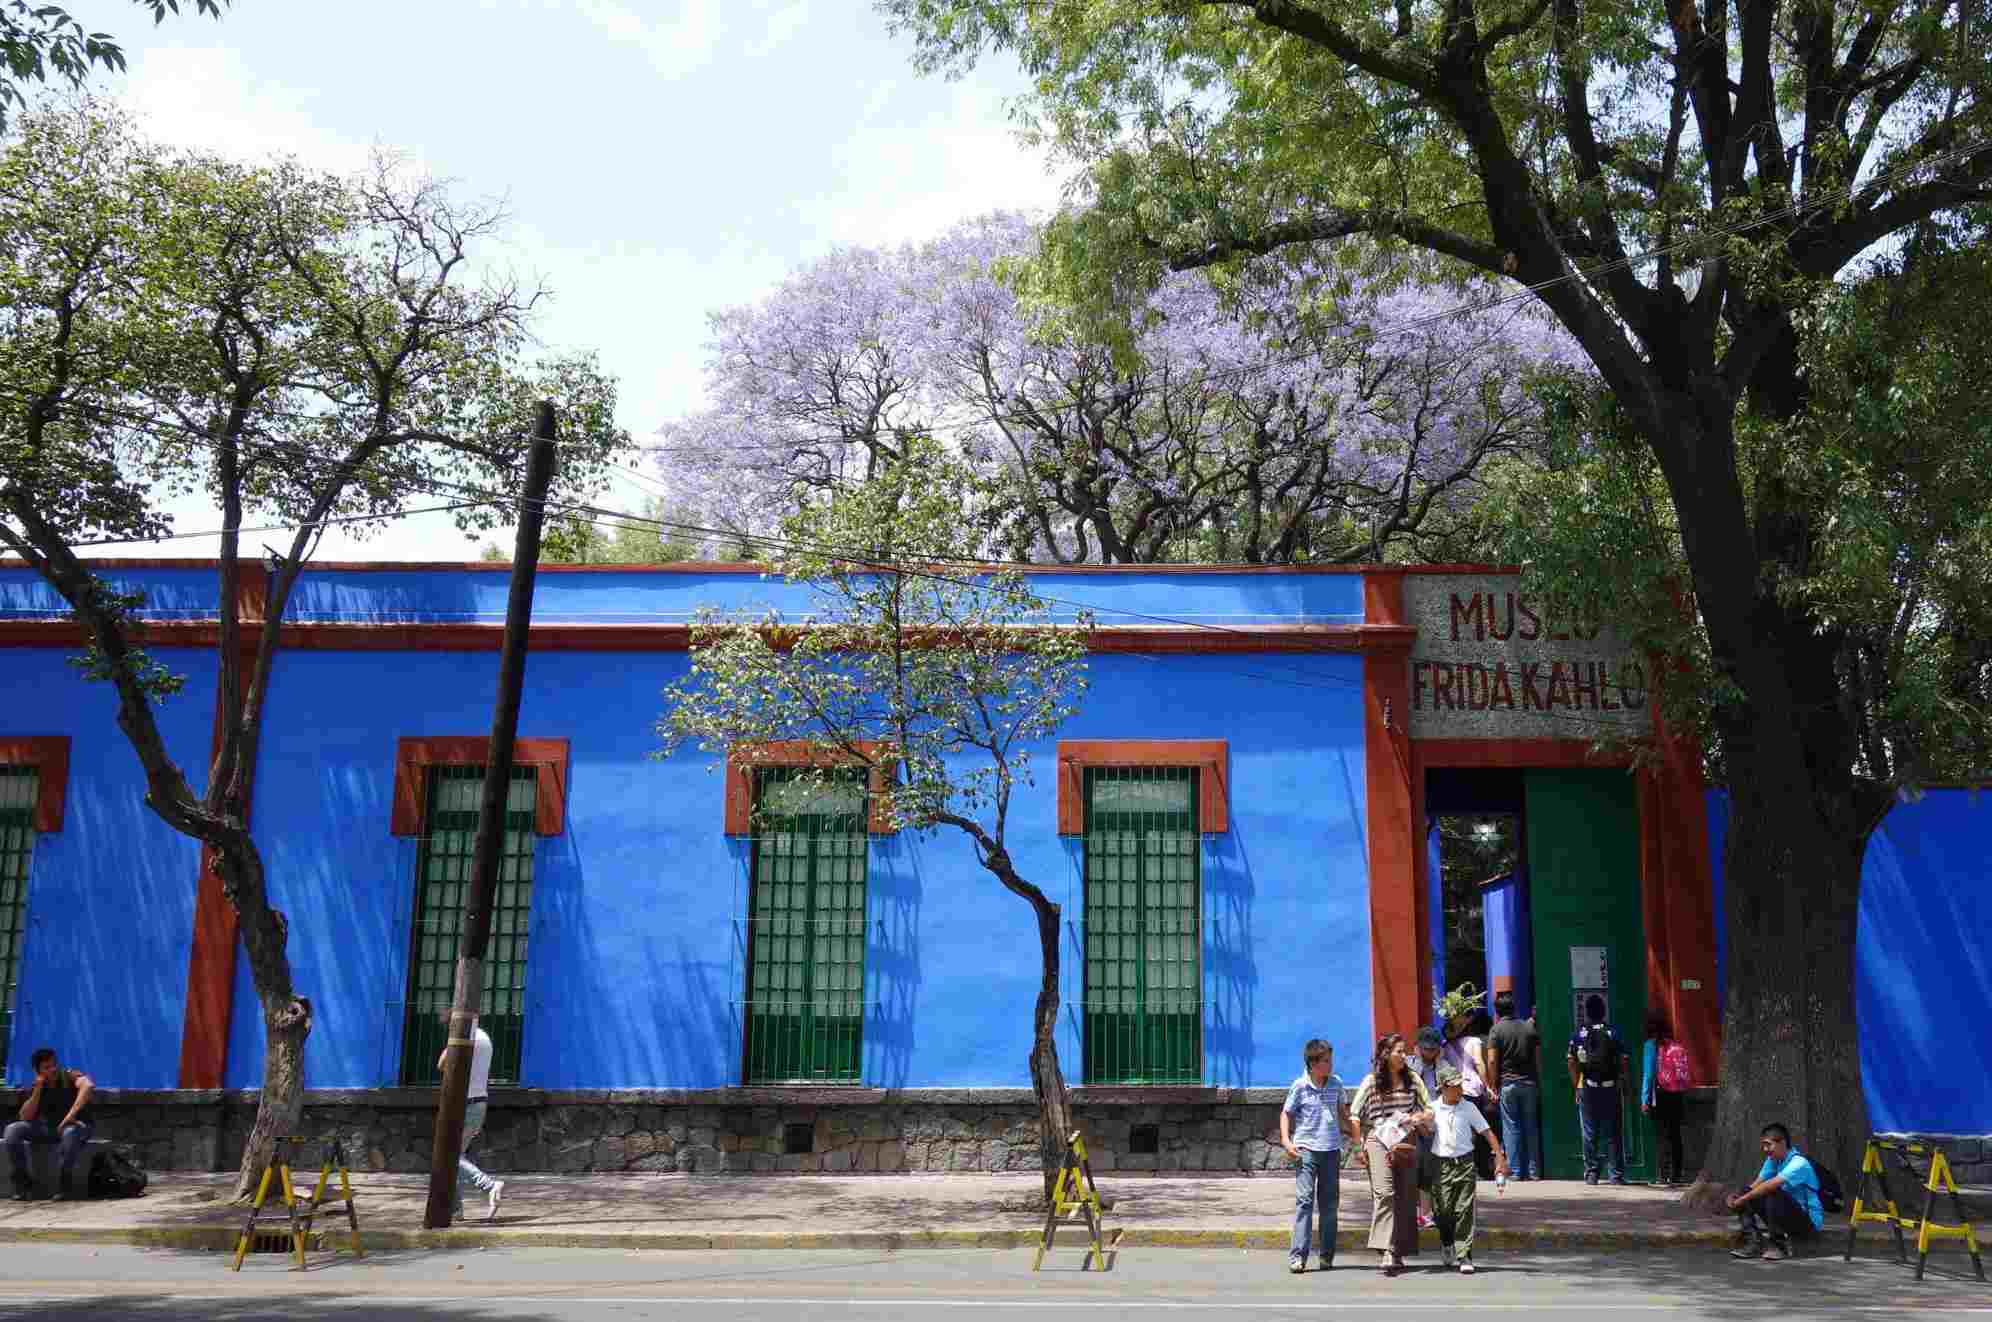 Frida Kahlo Museum, The Blue House in Mexico City